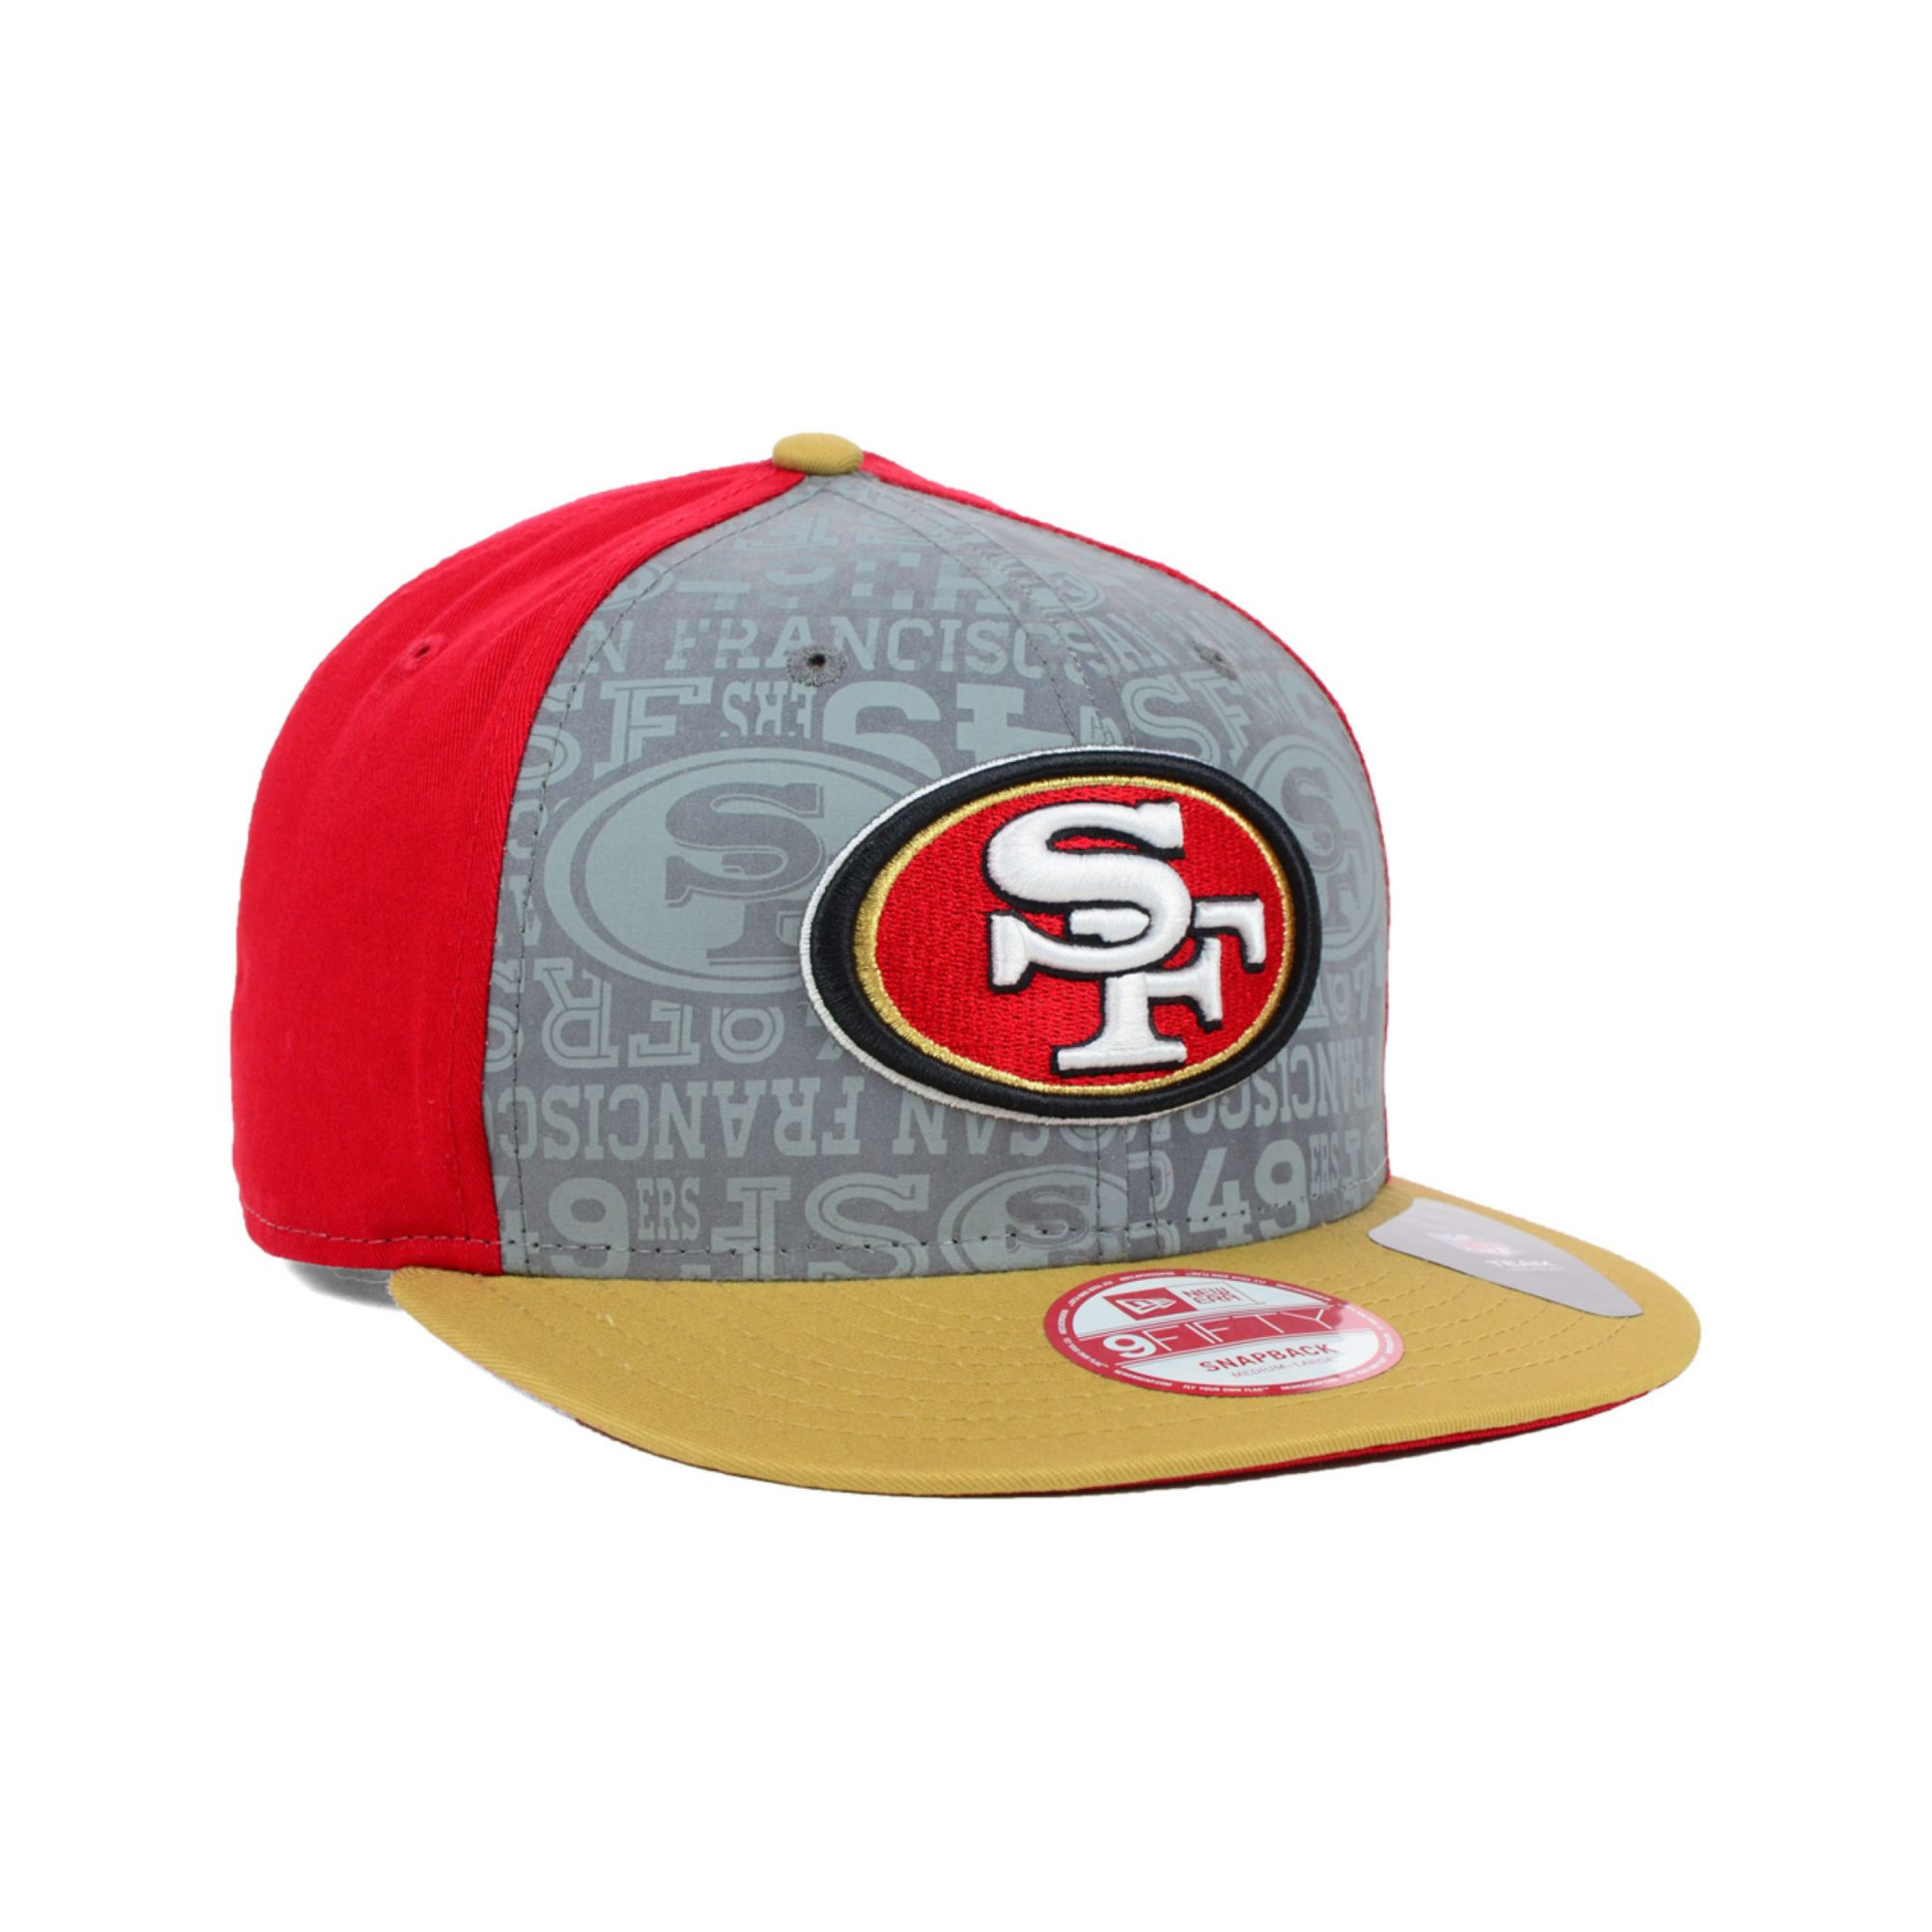 Lyst - KTZ Kids San Francisco 49ers Nfl Draft 9fifty Snapback Cap in ... d061df6ec